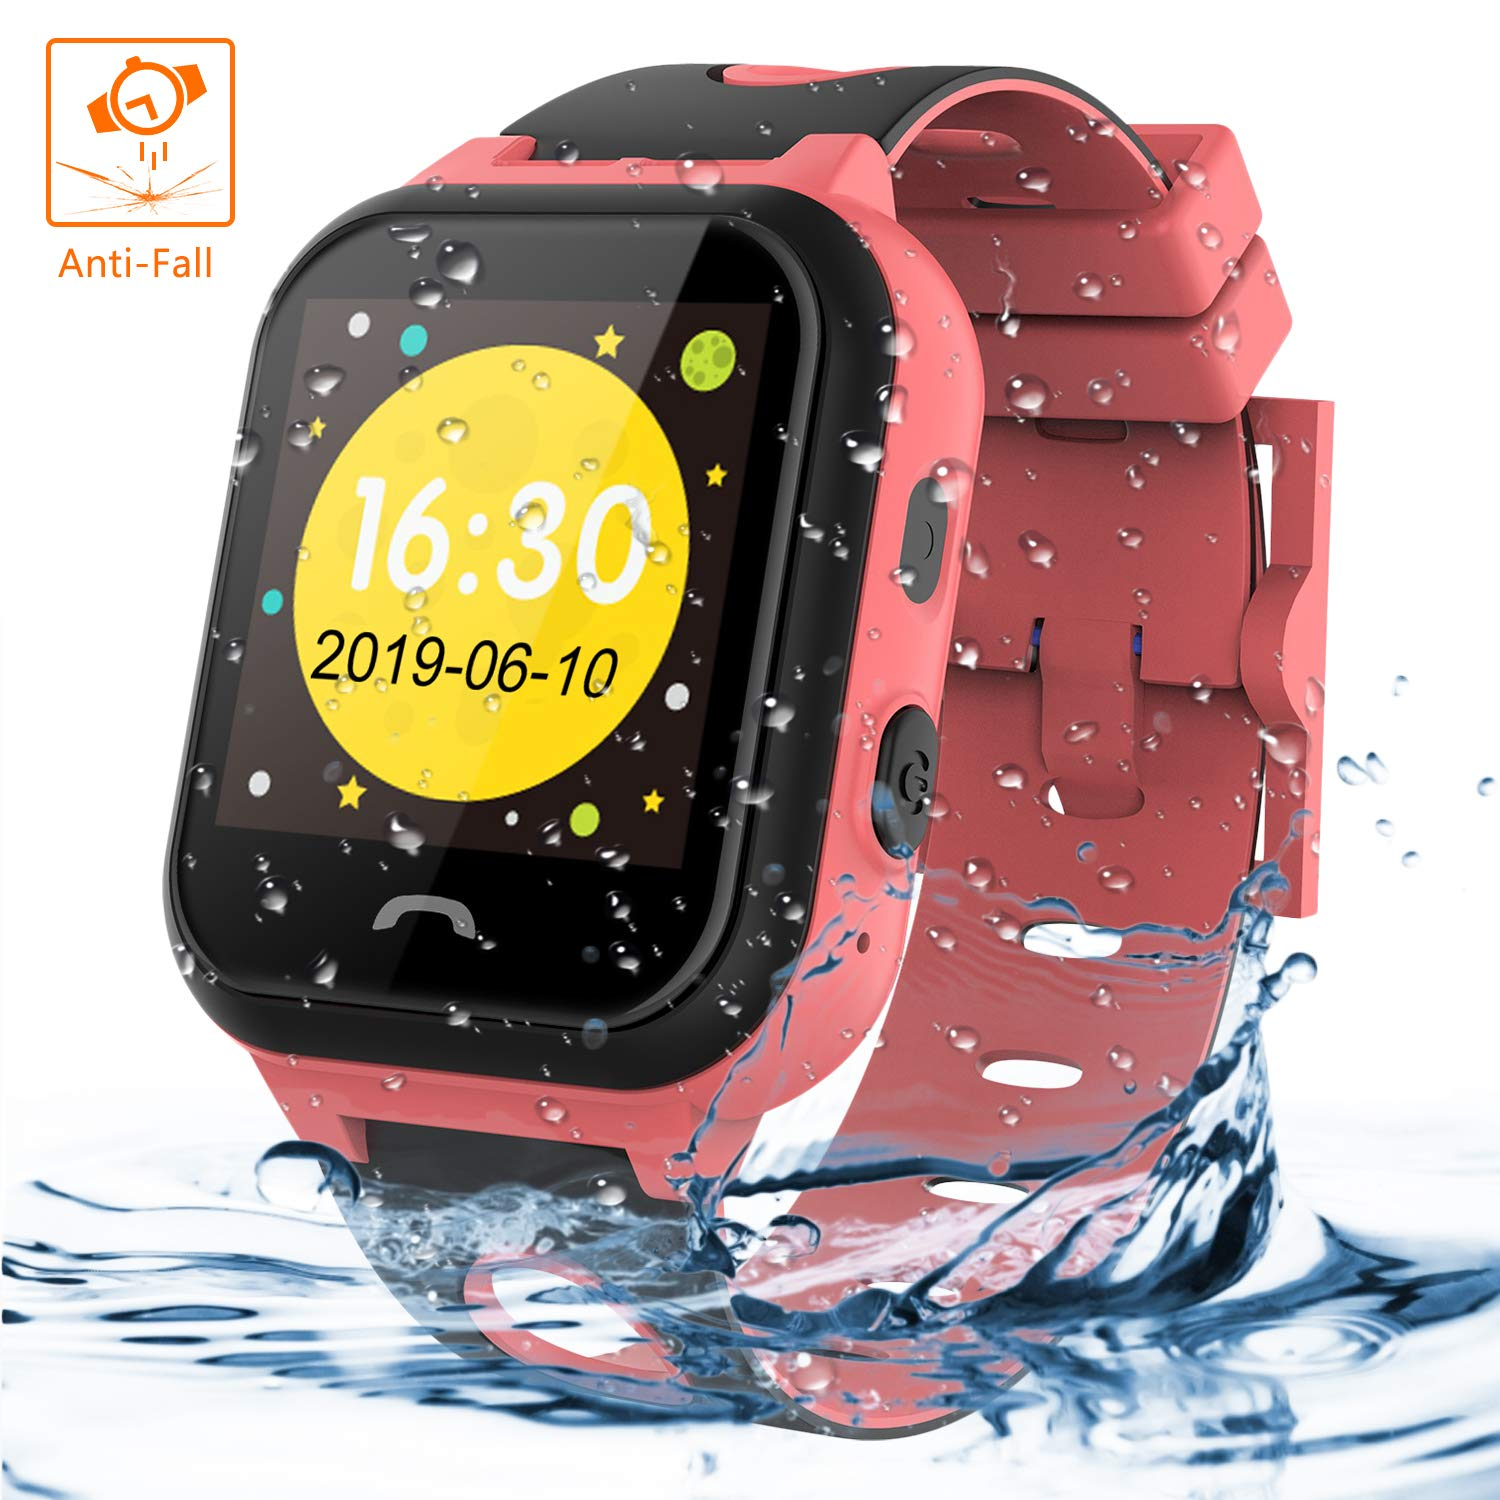 Kids Tracker Smart Watch Phone, Vannico Touch Screen Mobile Smart Watches for Girls Boys, Waterproof Anti-fall SOS Sim Smartwatch with Flashlight, Camera, Alarm for Kids (Pink)